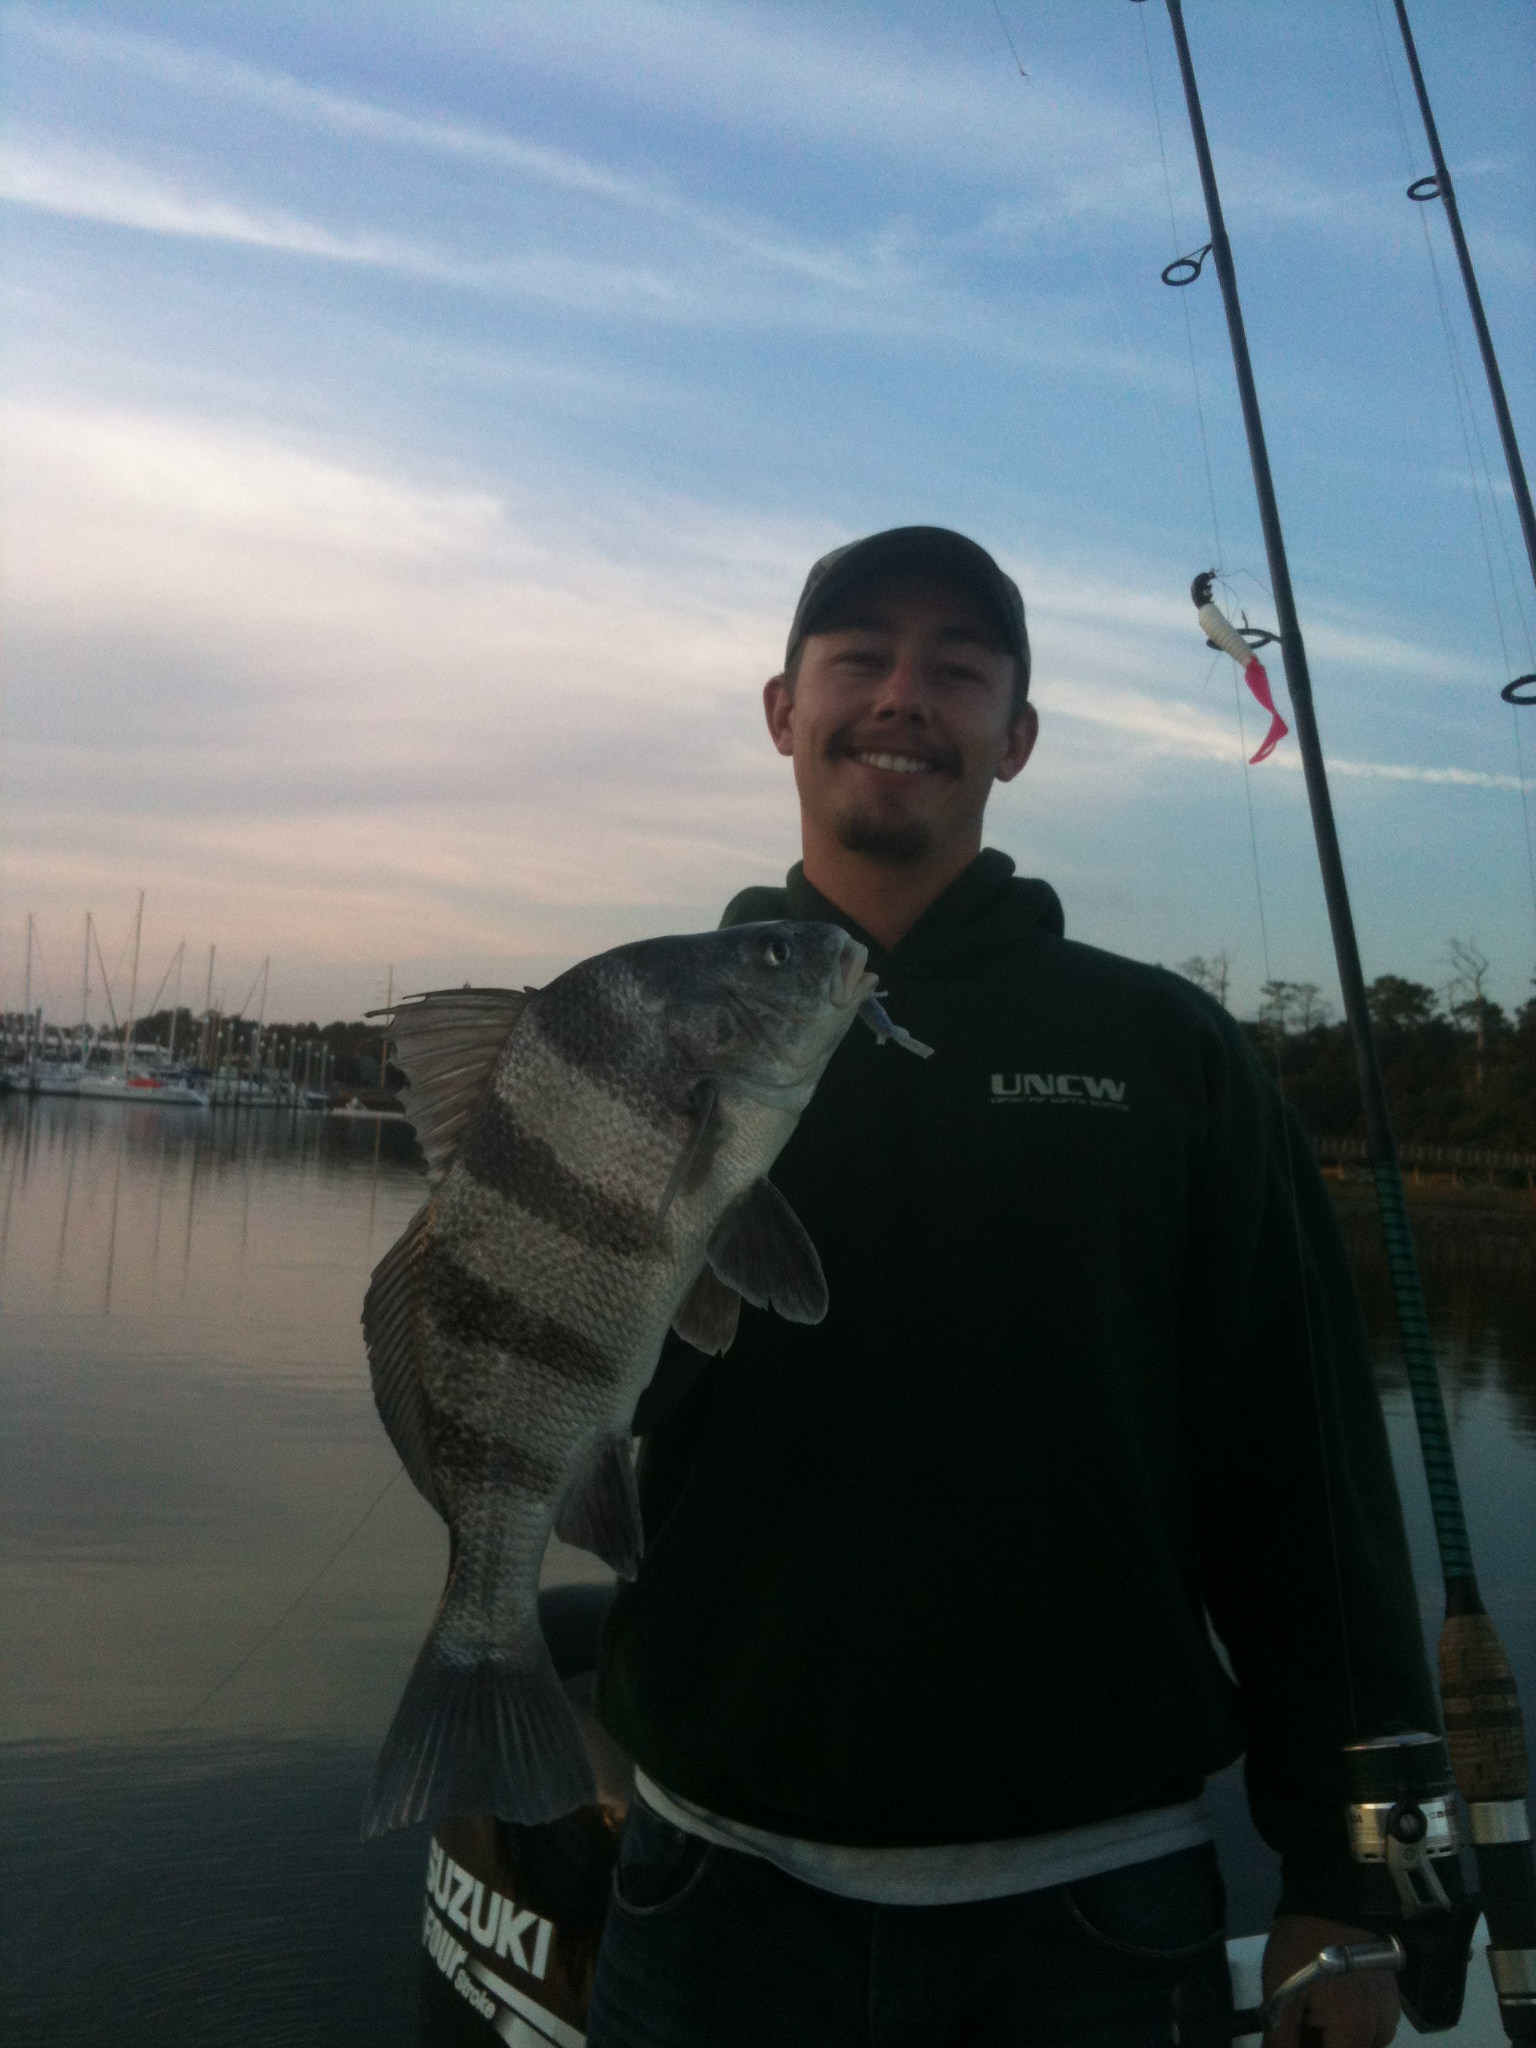 Fishing report for wrightsville beach carolina beach for Fishing report wrightsville beach nc